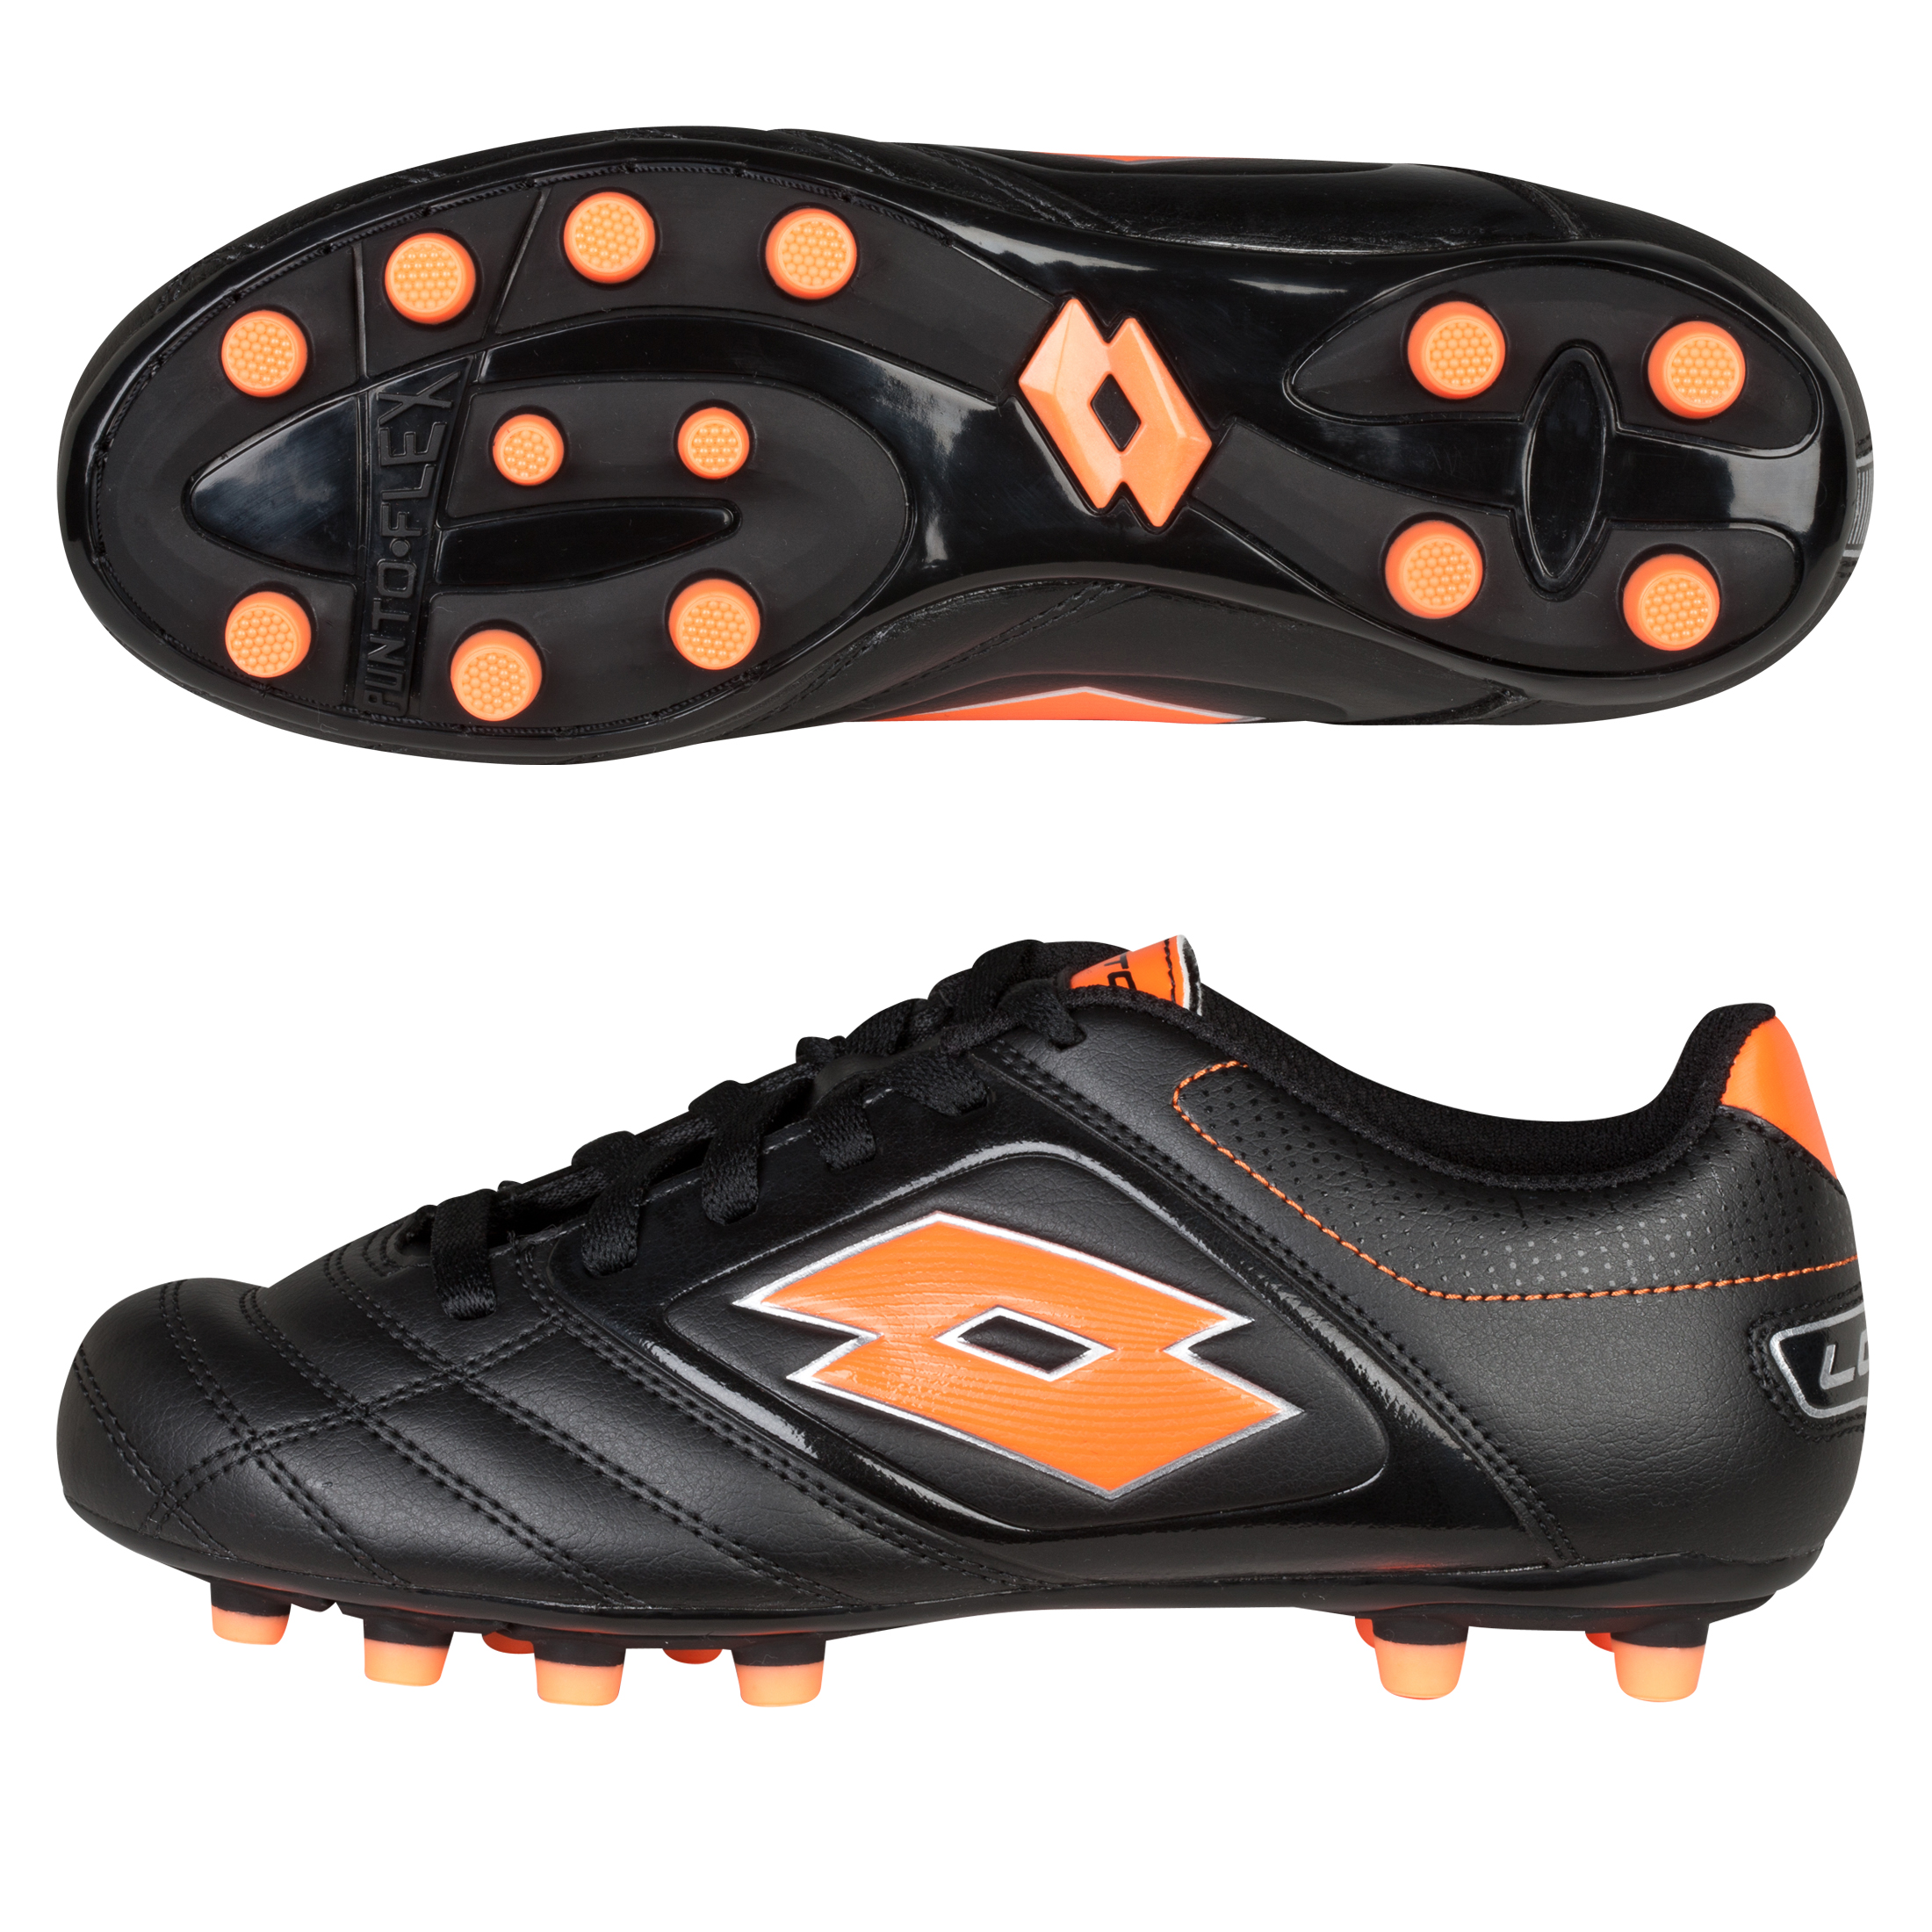 Lotto Stadio Potenza 500 Firm Ground Football Boots - Black/Orange Fluo